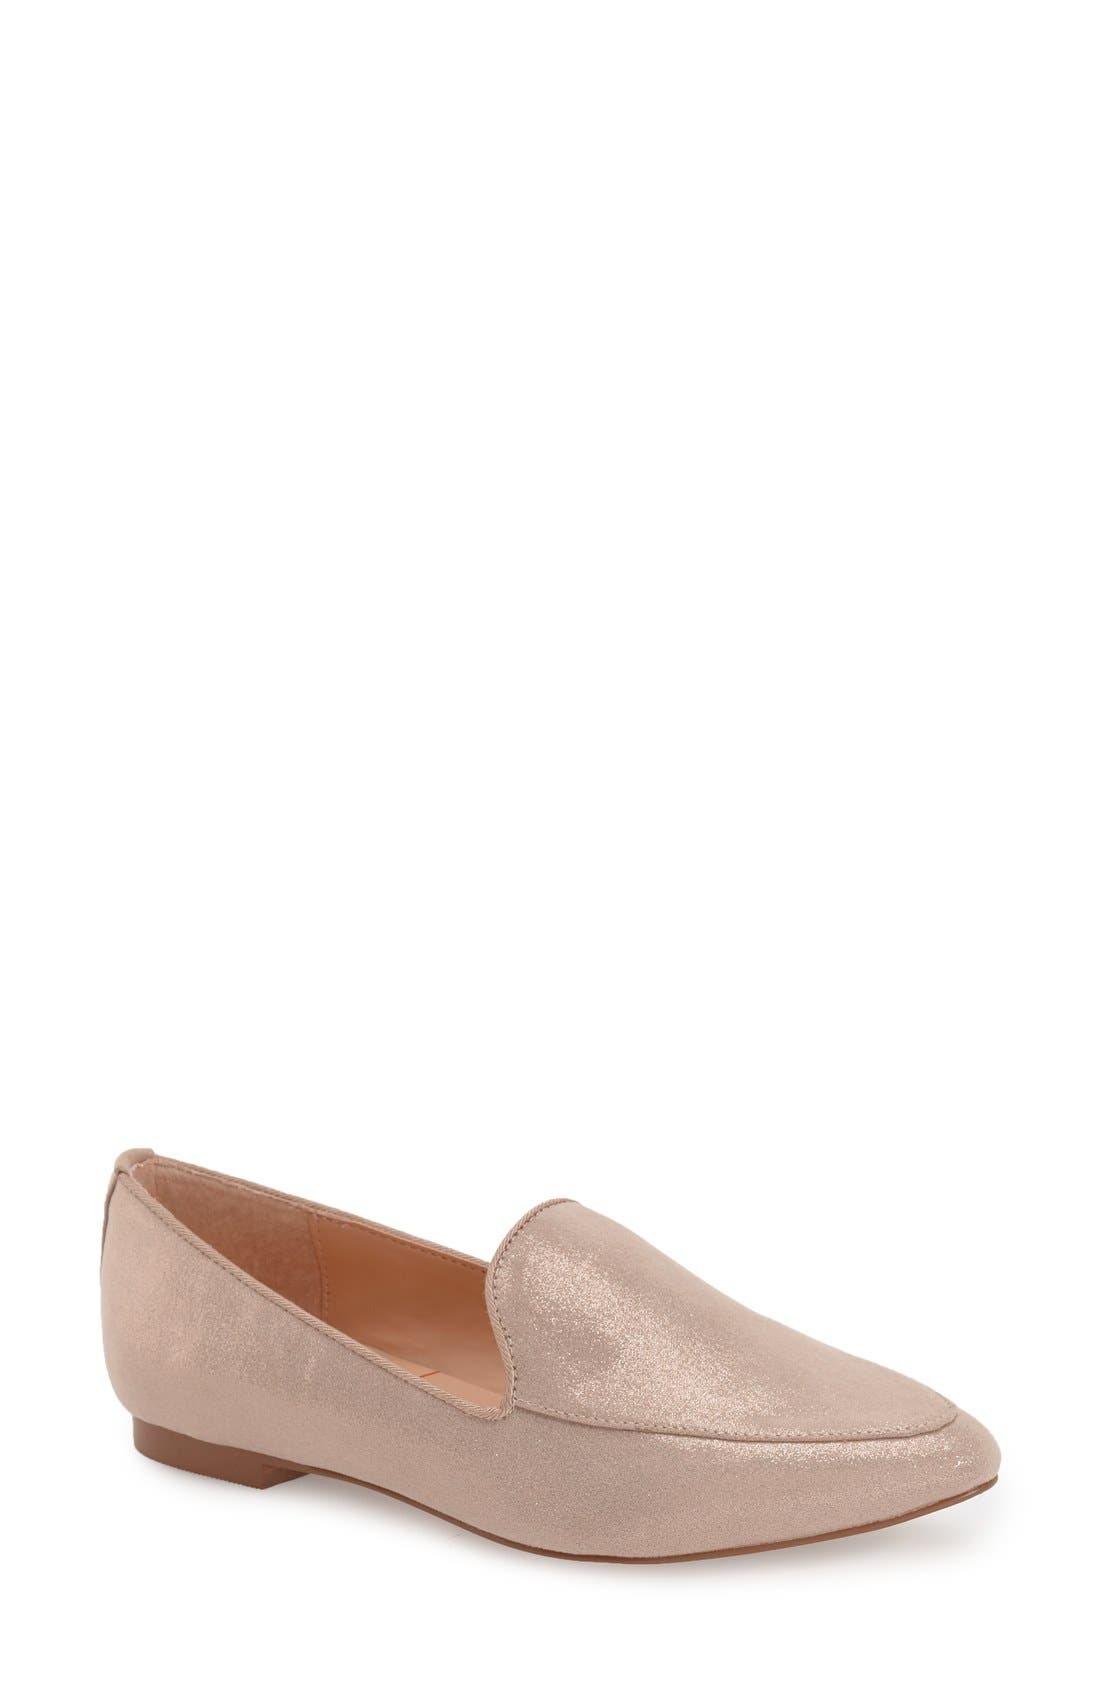 'Sean' Pointy Toe Loafer,                             Main thumbnail 1, color,                             285